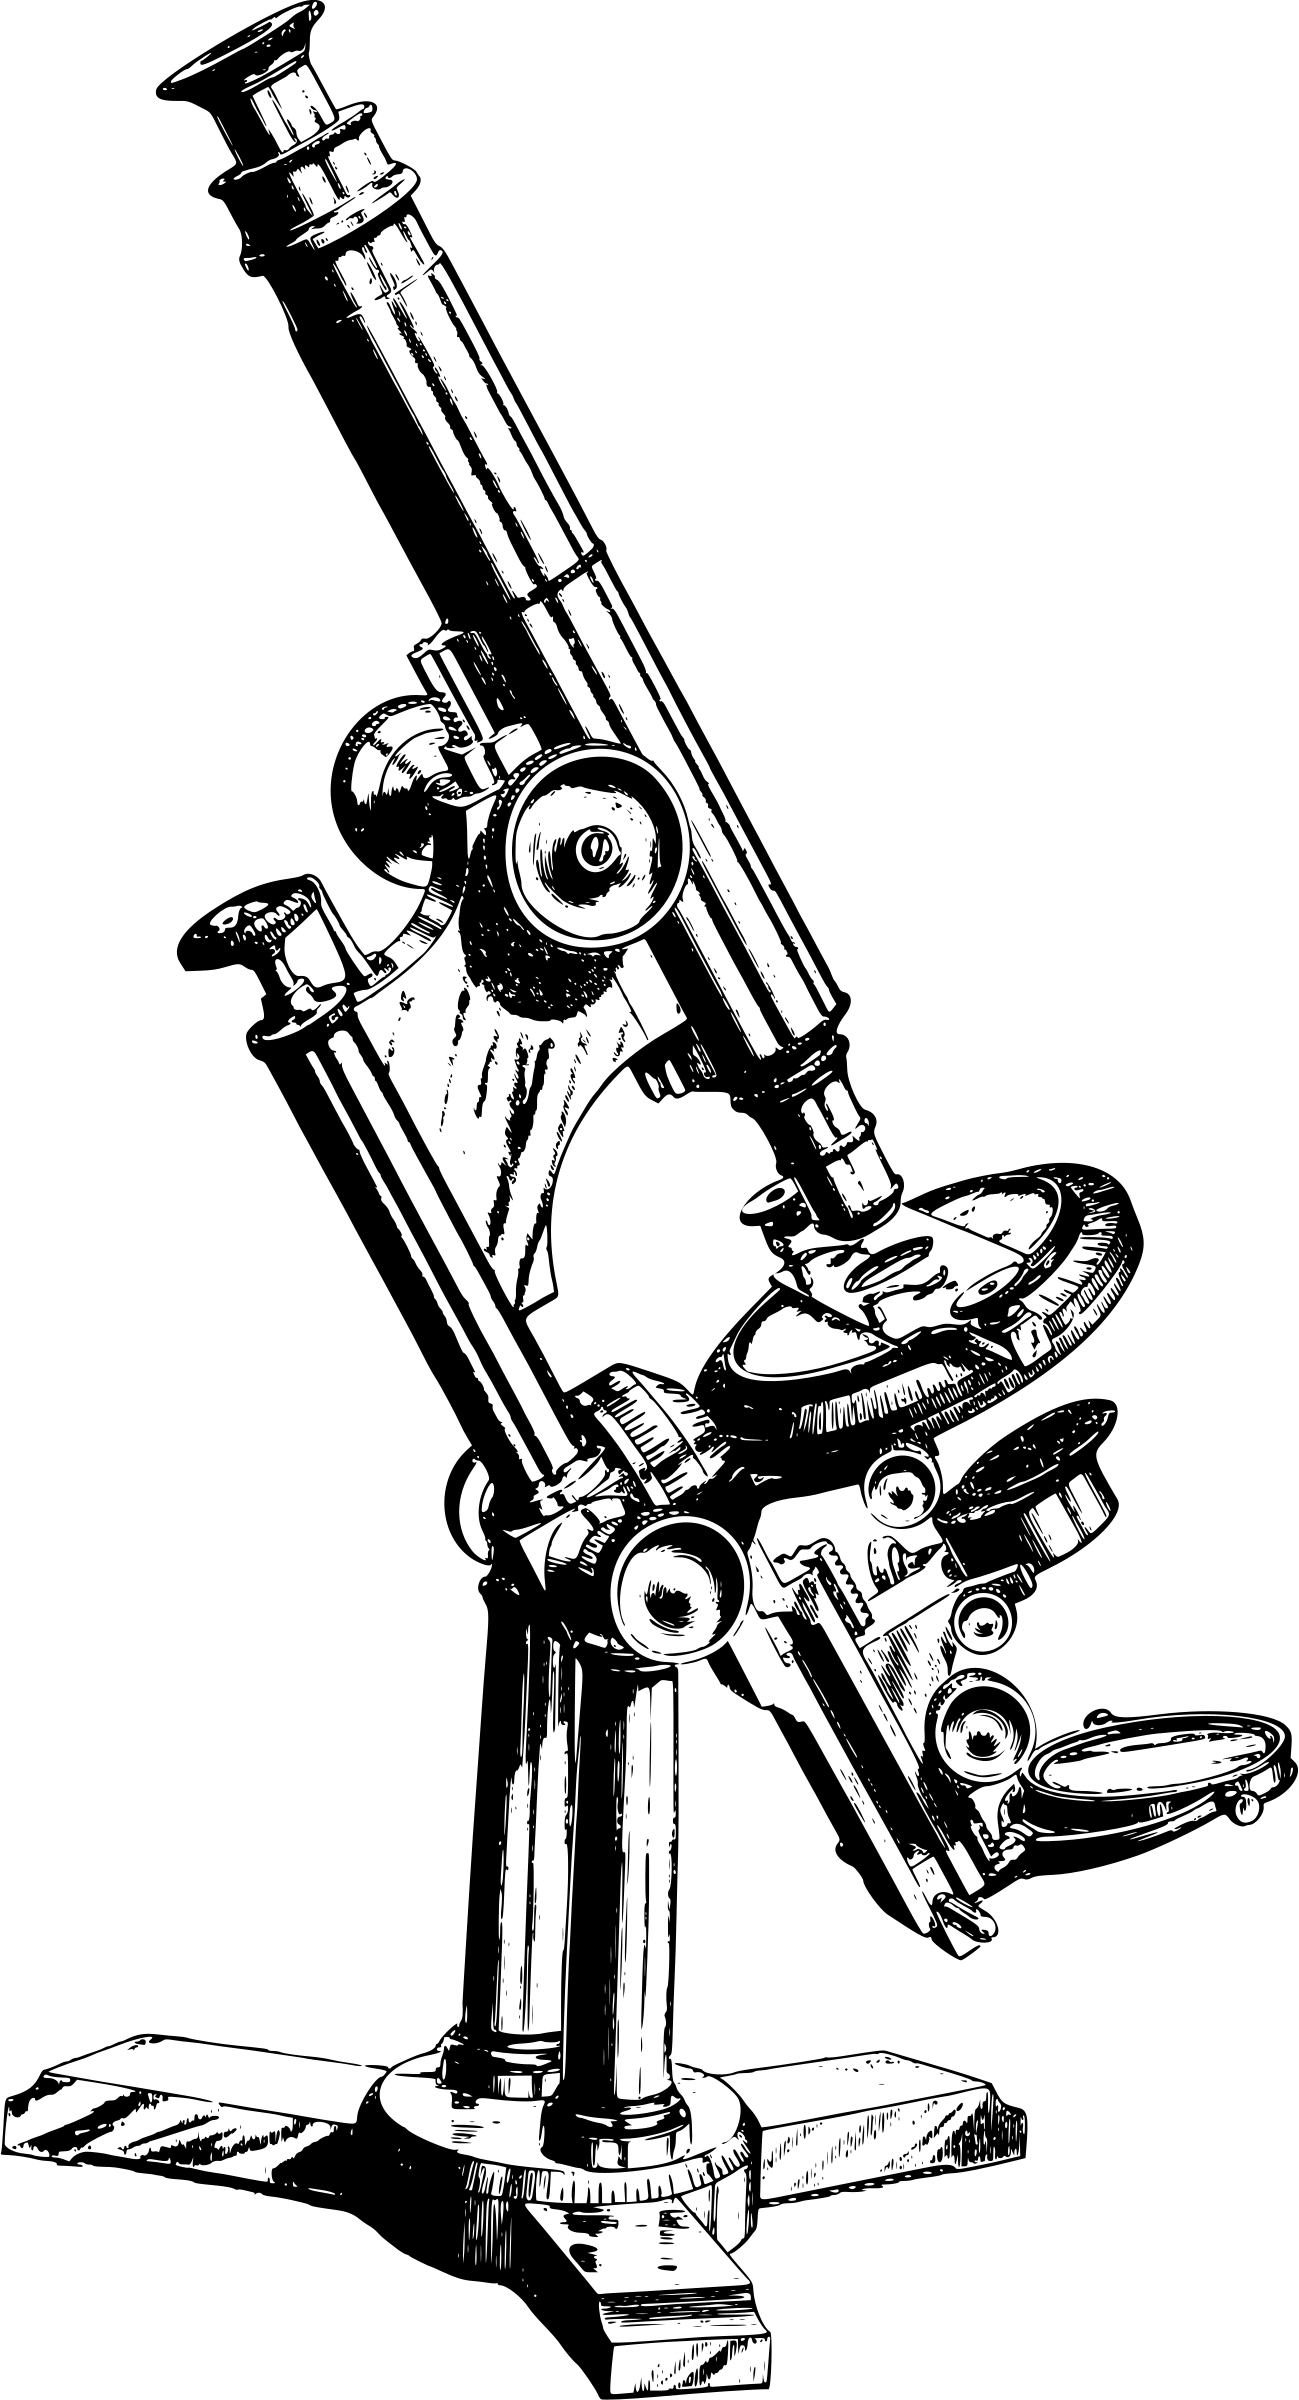 clip art free stock Boxing drawing vintage. Binocular microscope at getdrawings